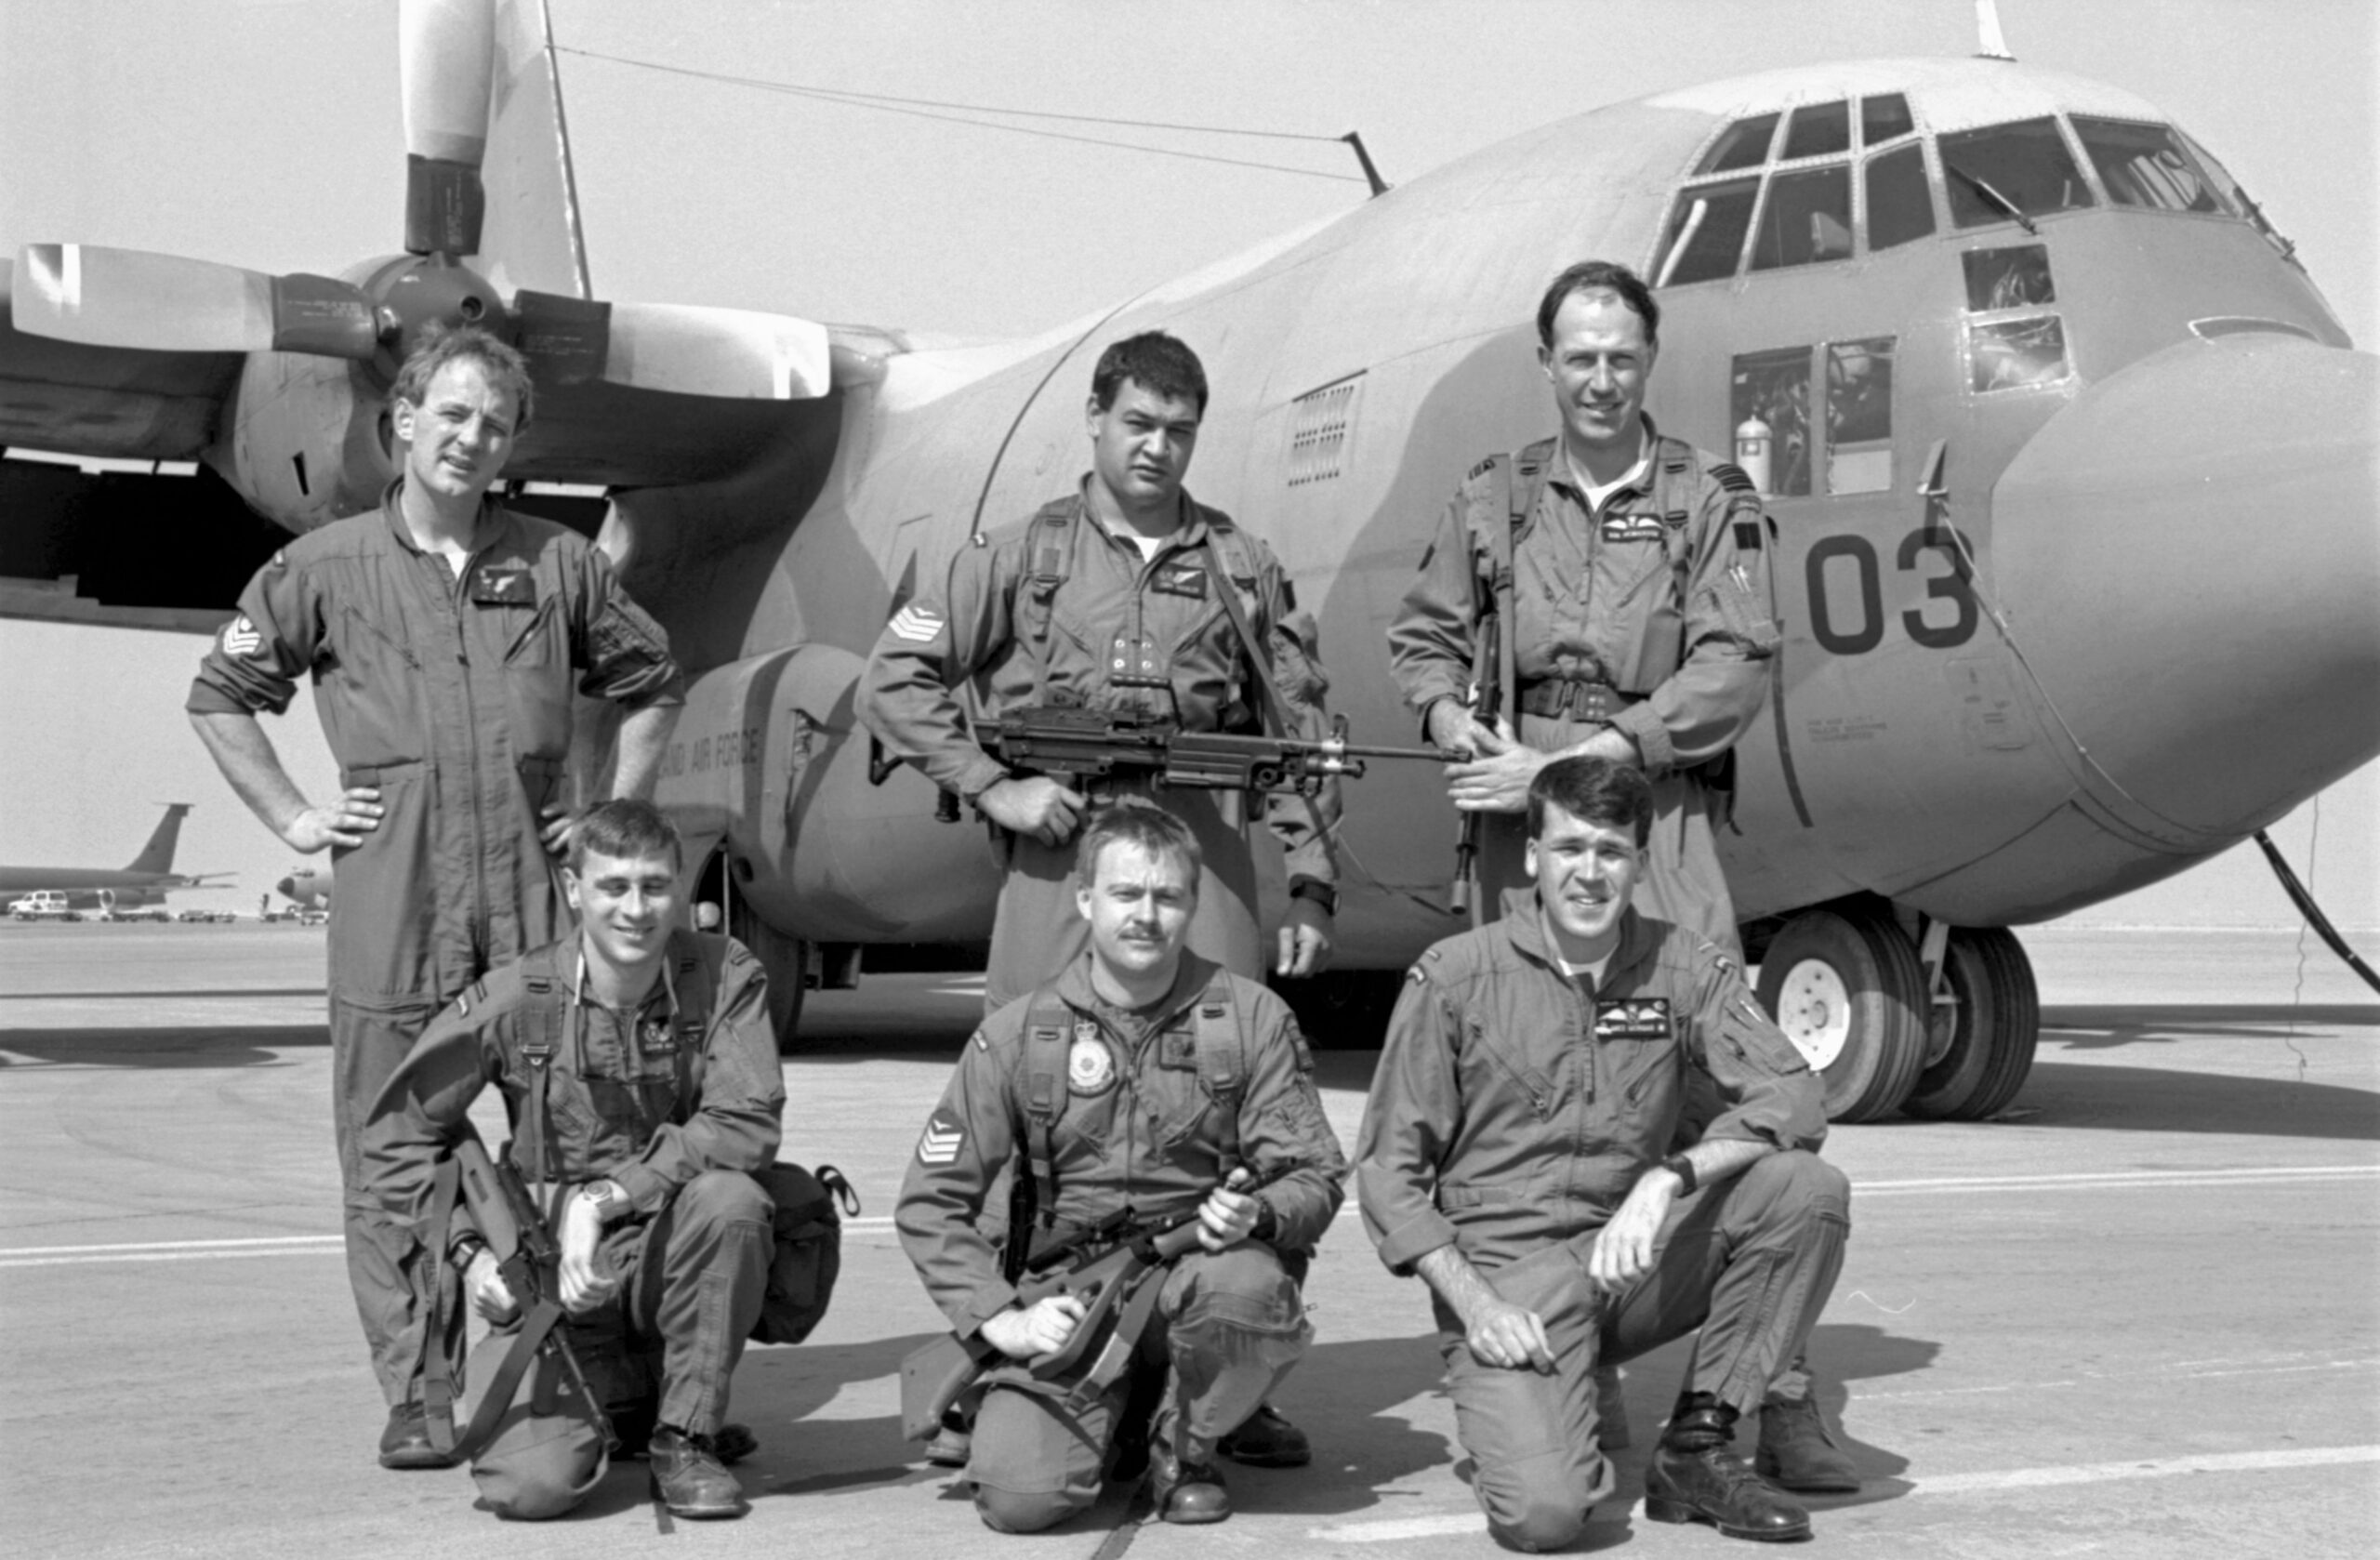 Crew of No. 40 Squadron Hercules NZ7003. Presumed to be at Riyadh, Saudi Arabia, 1991.  L-R: Back; Flight Sergeant Bruce Melvin, Sergeant J Buchler, Wing Commander Robert Henderson (Detachment Commander and aircraft captain) Front; Flying Officer Kevin McEvoy, Sergeant Ty Cochran, Flying Officer M Morgan. Image ref PD21-21-91, RNZAF Official.